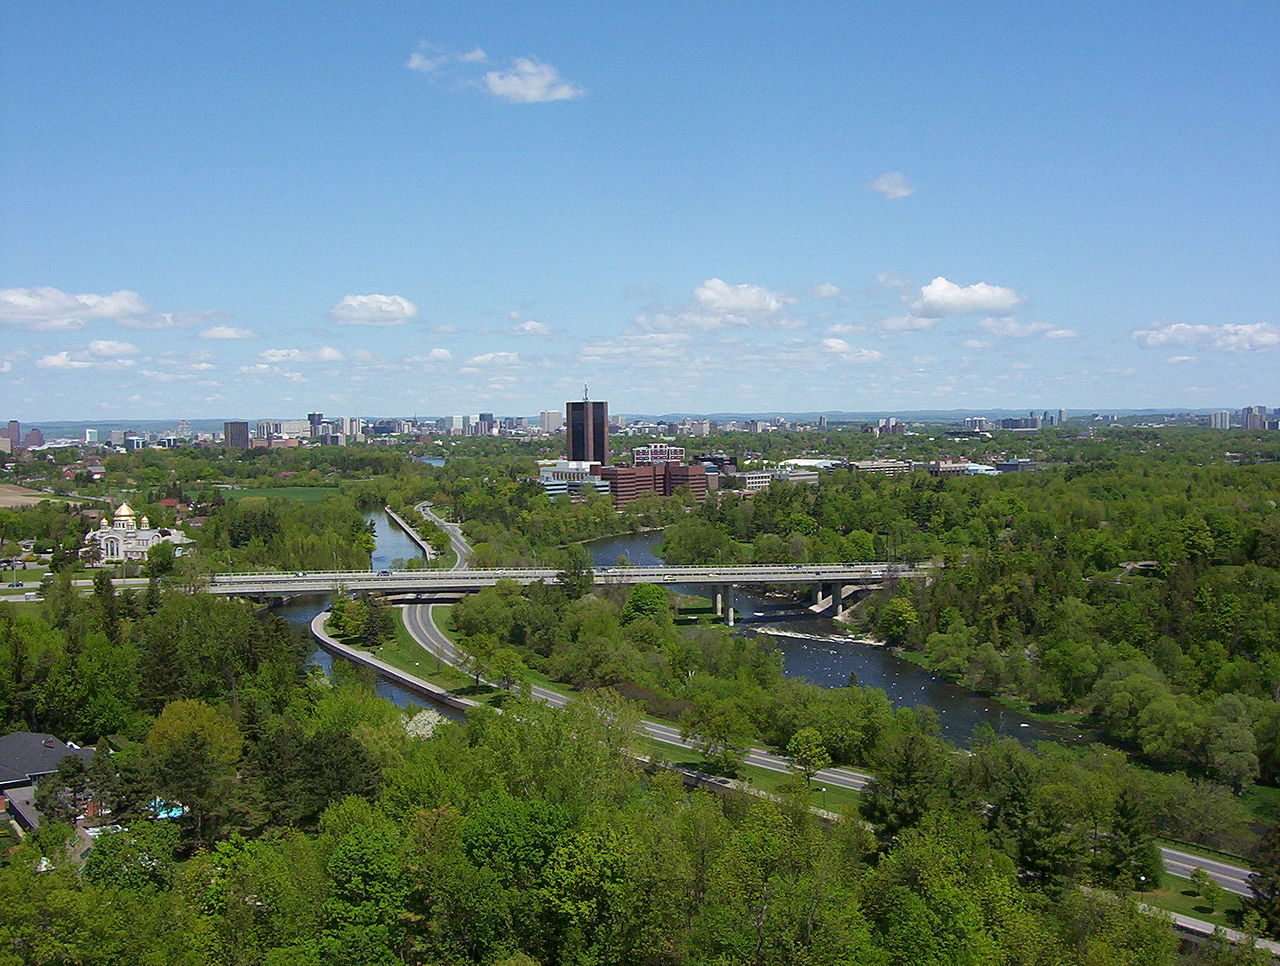 1280px-Carleton University south view 2